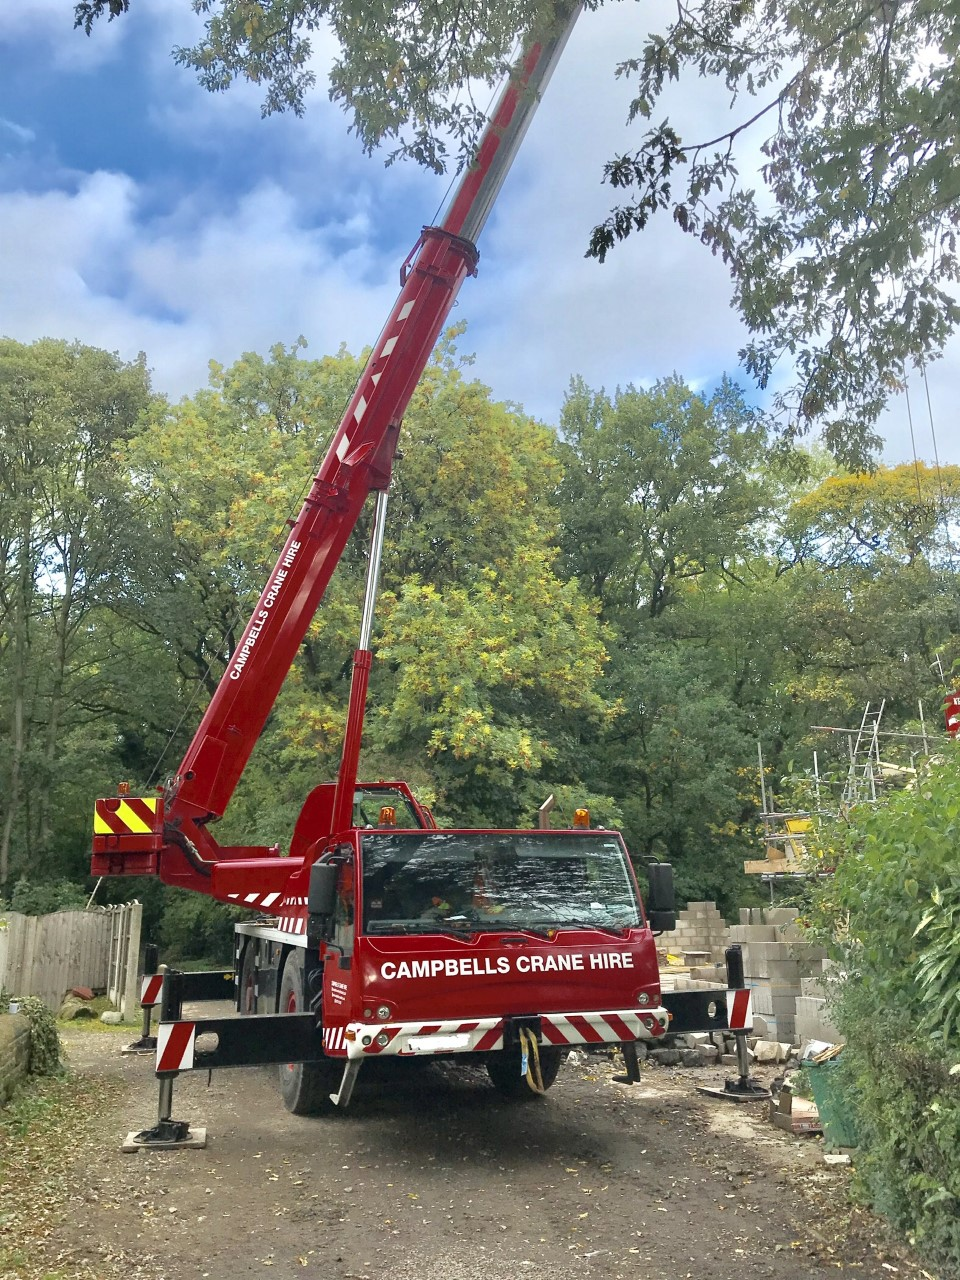 Contract Lifting Services From Campbells Crane Hire